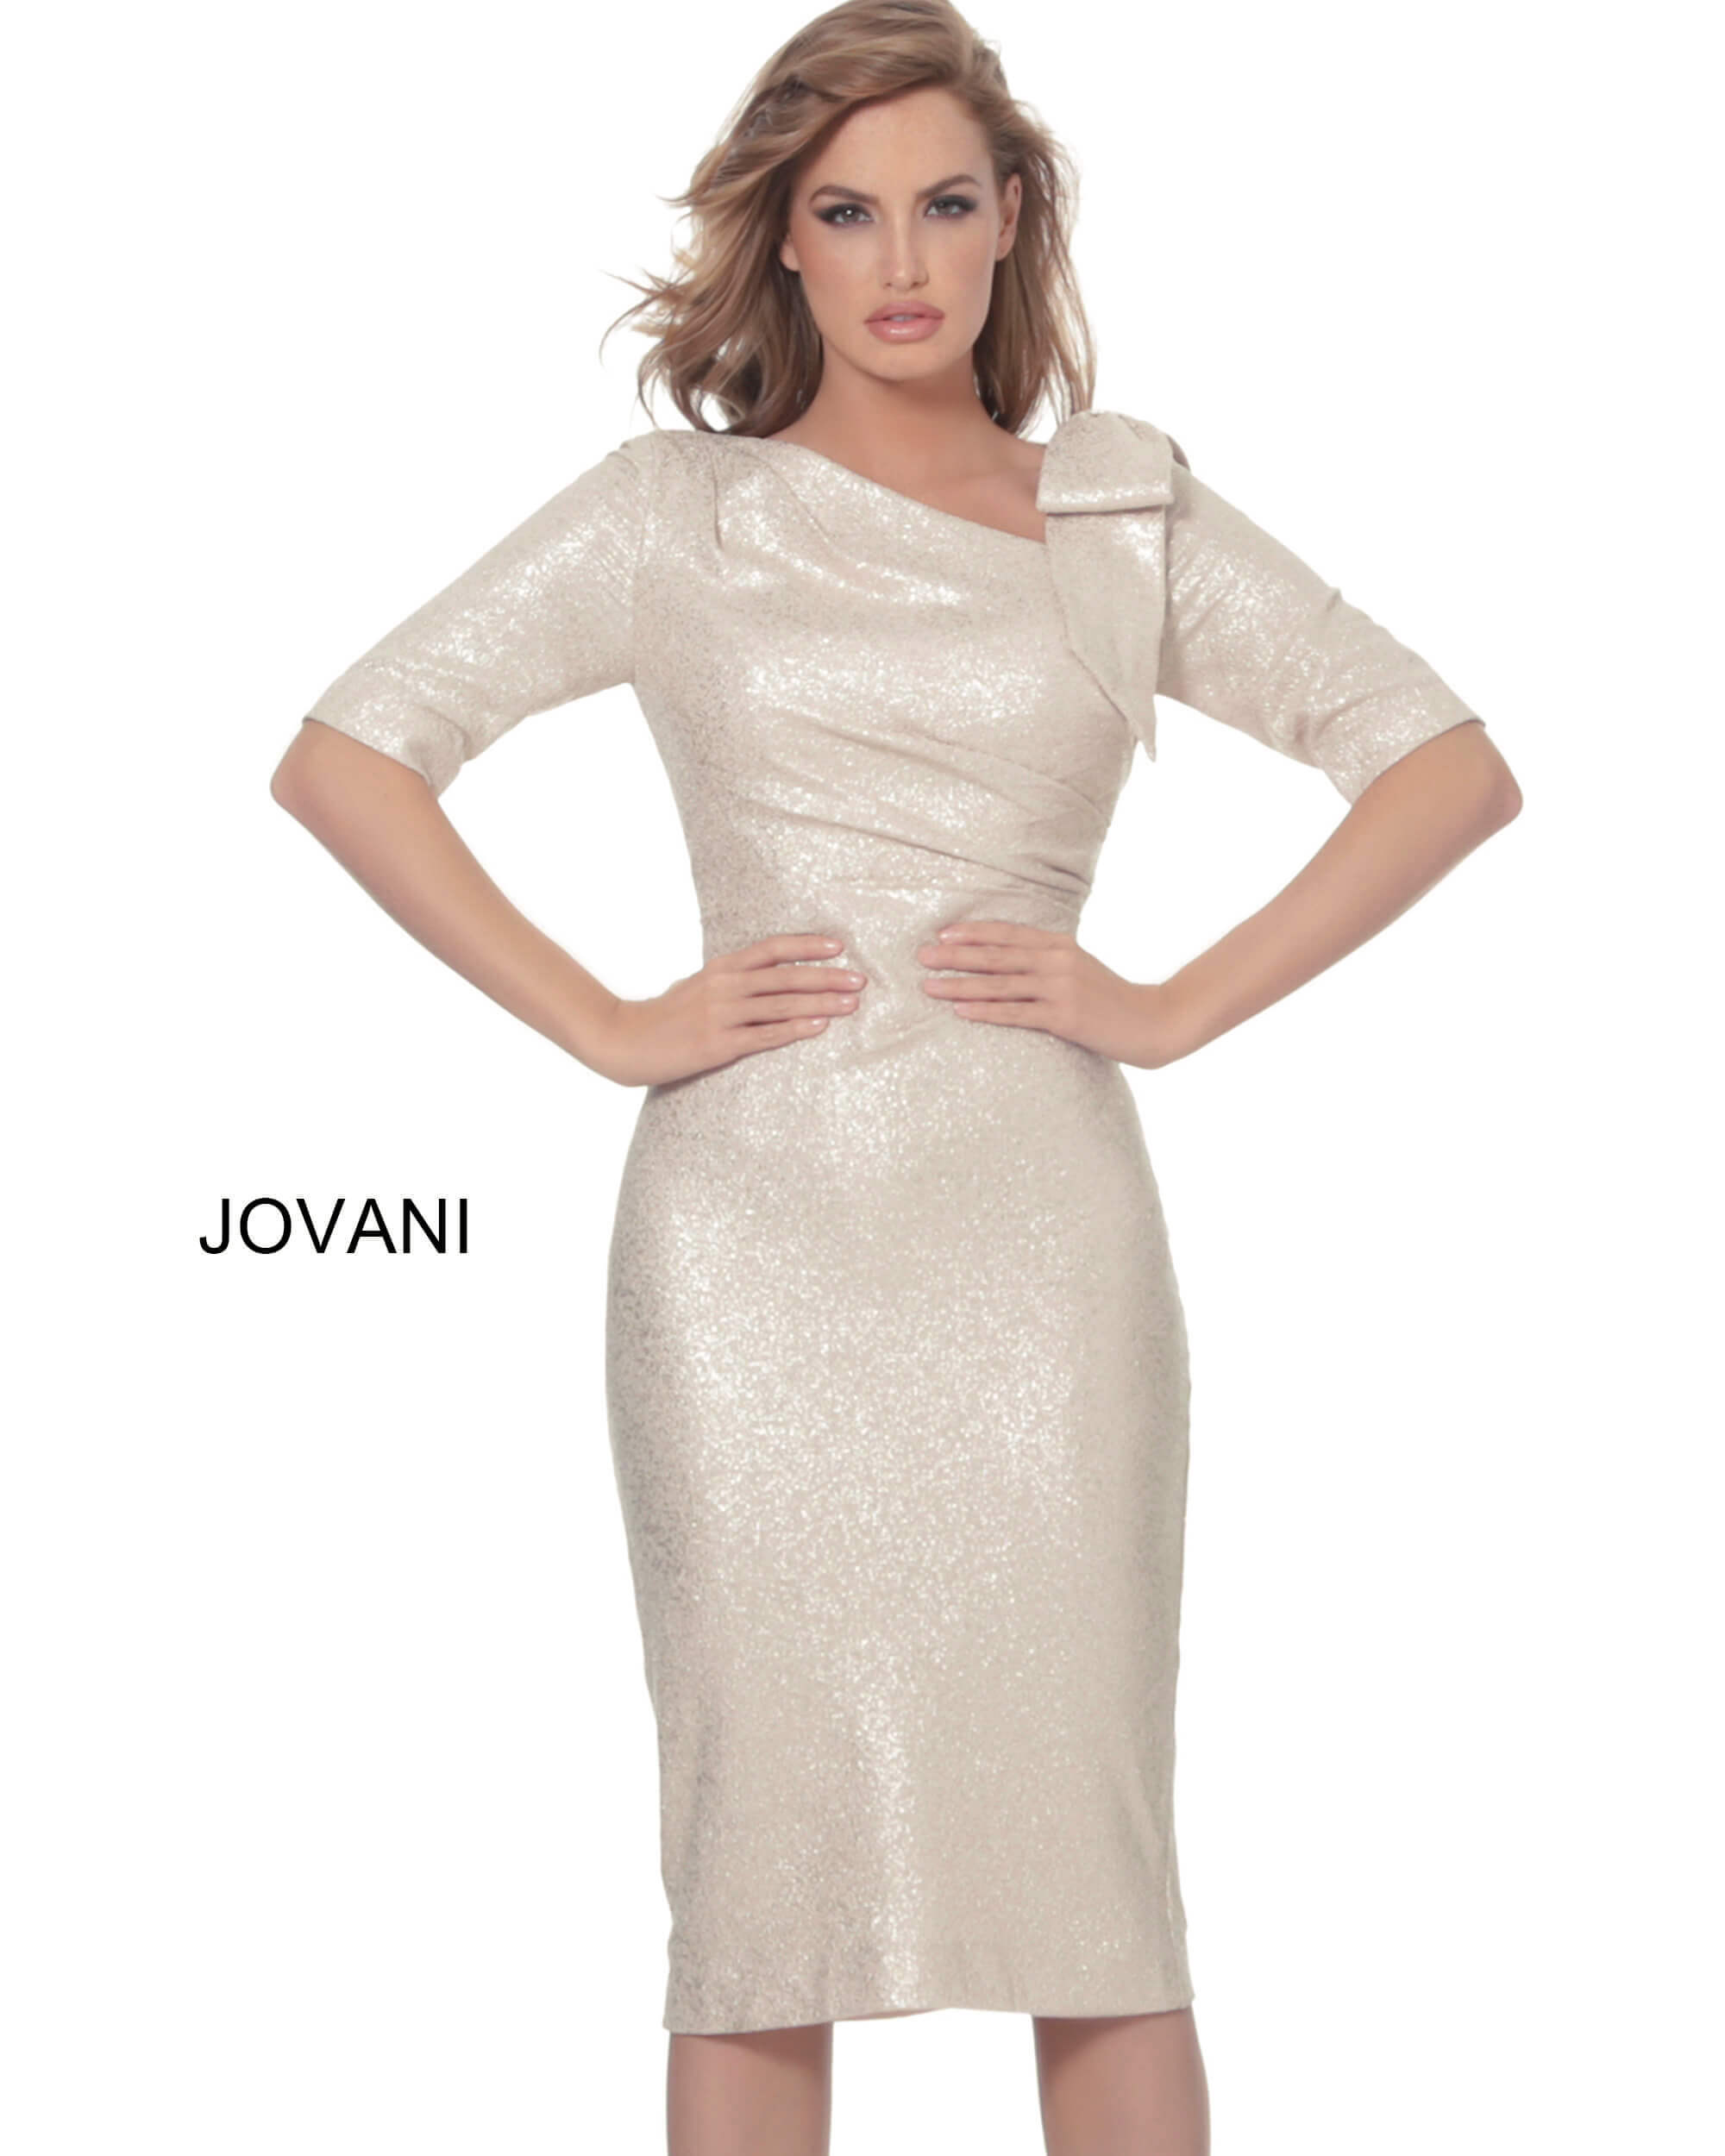 Sheath light gold cocktail dress 03641  on mobile 2